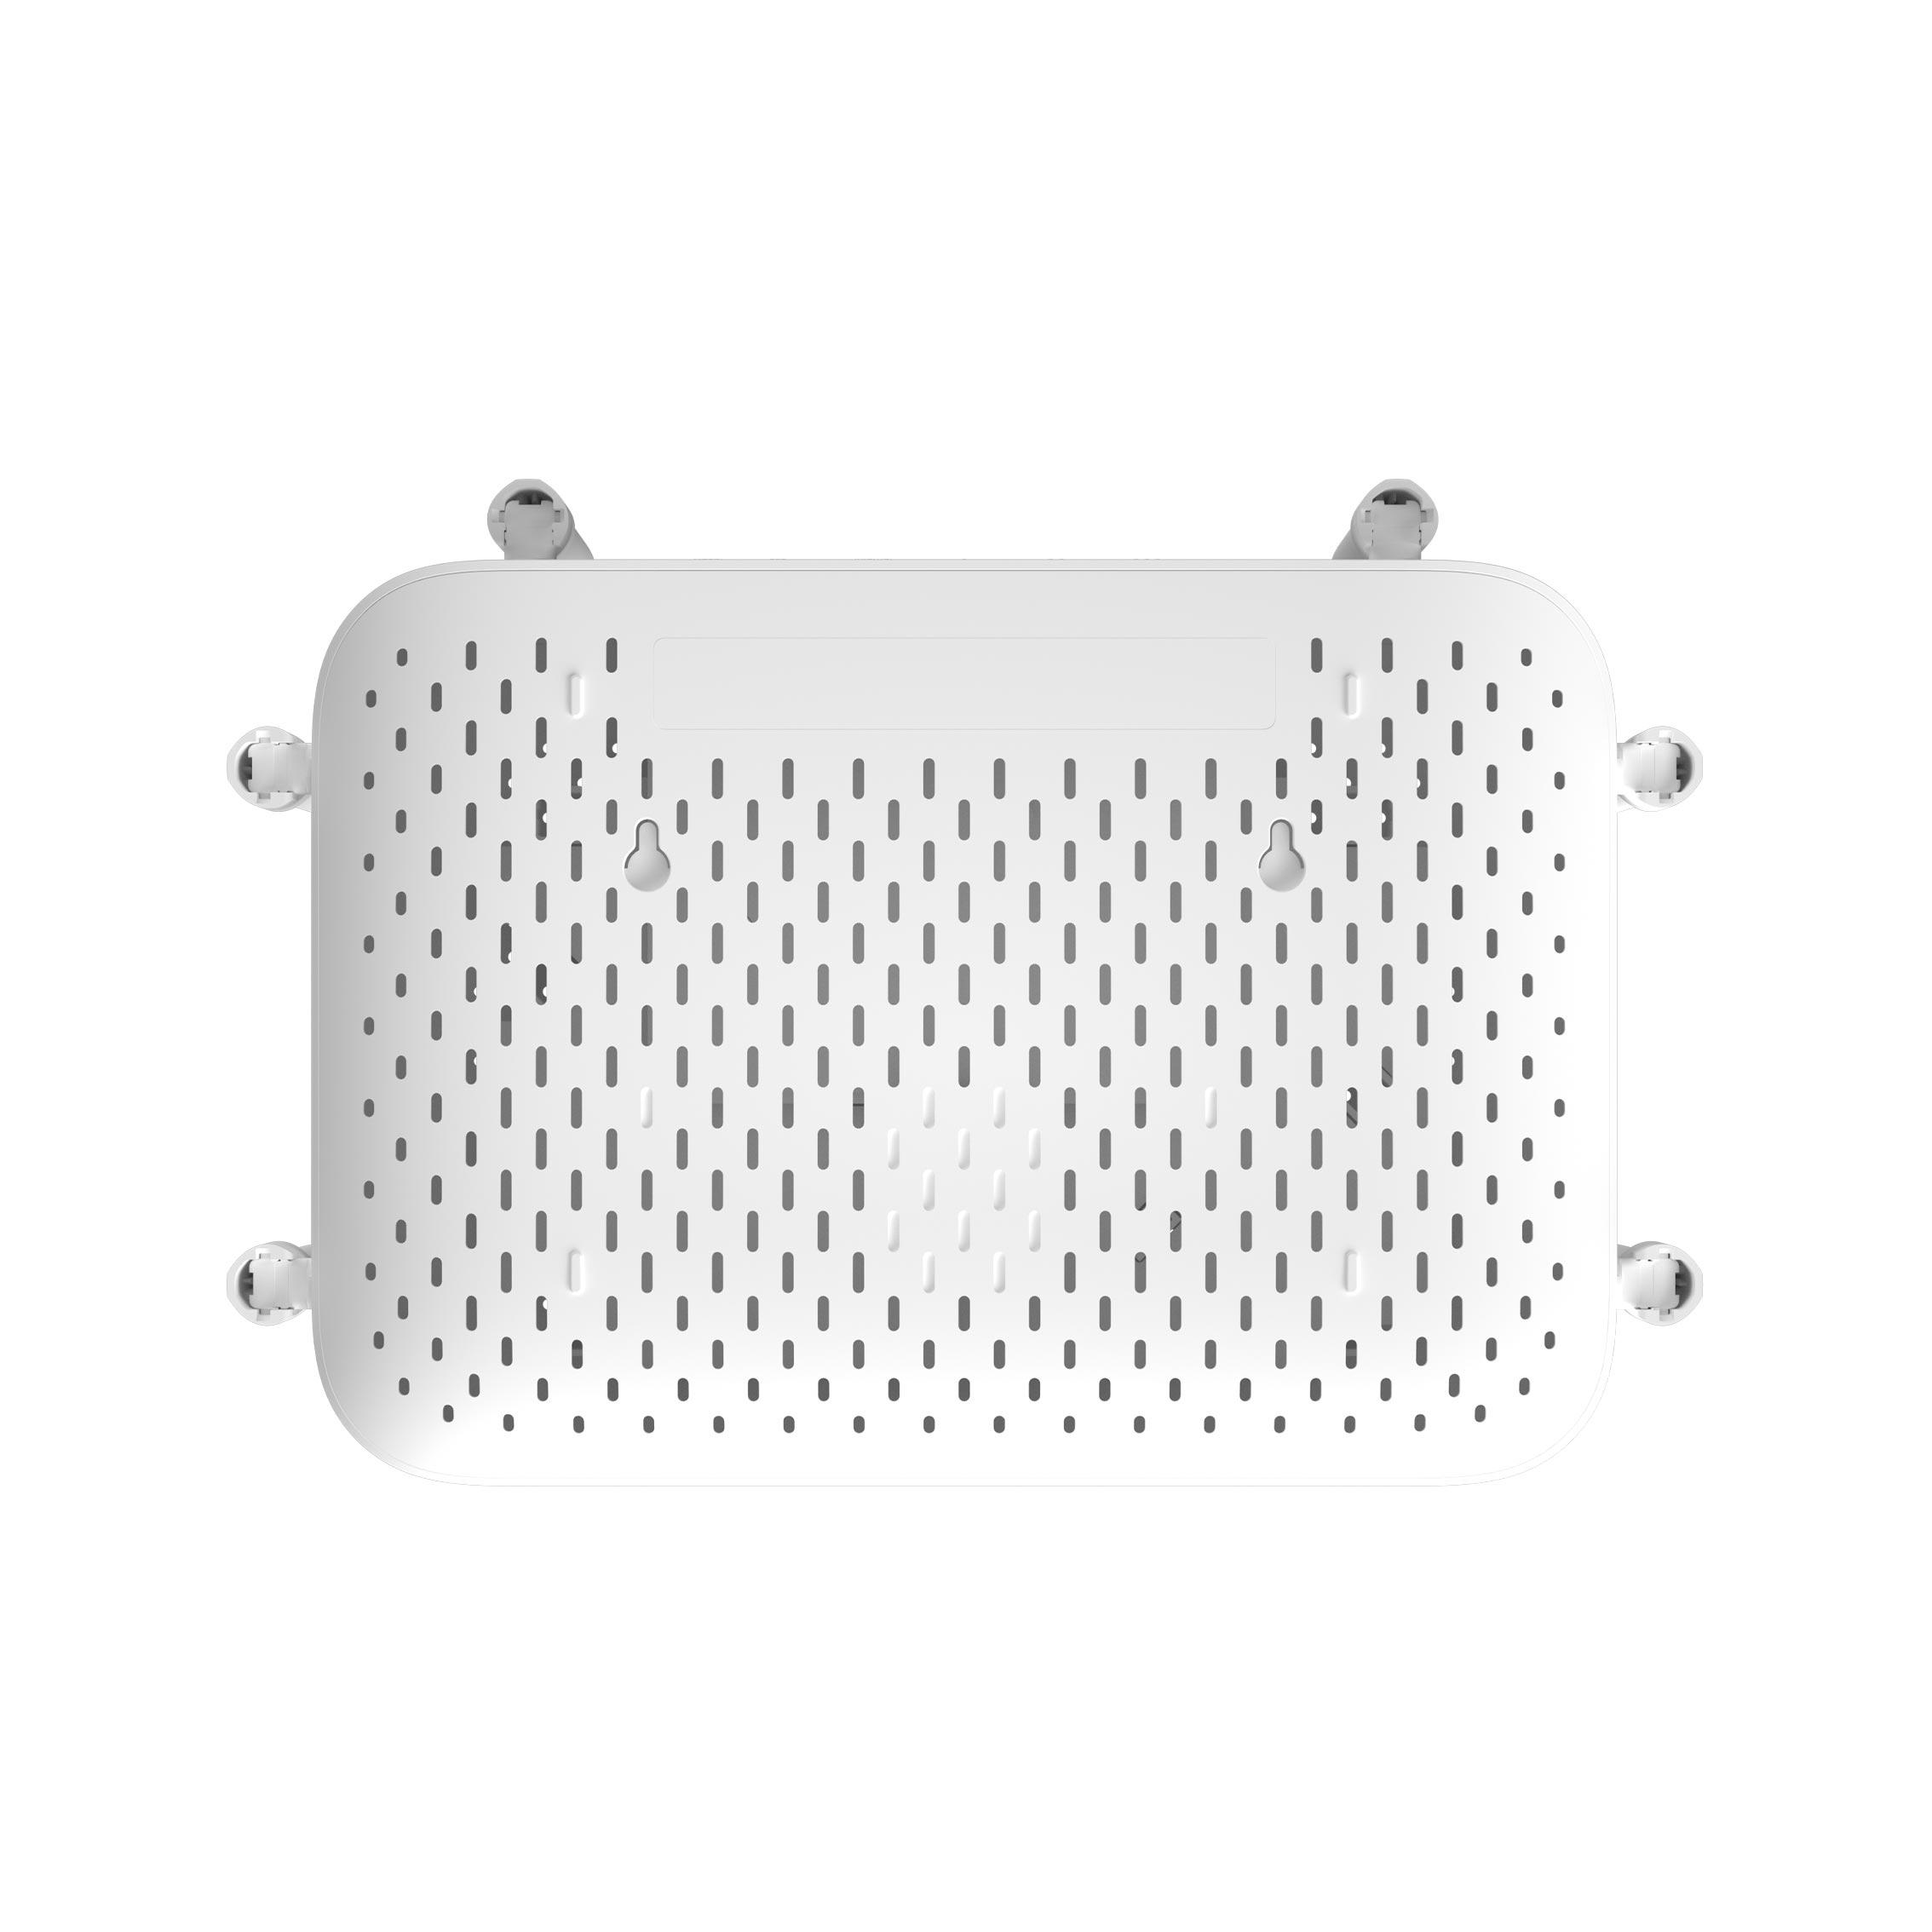 Xiaomi Router AX1800 1775Mbps 5-Core Wi-Fi 6 Wireless Router Dual Band 256MB Support Mesh OFDMA IPv6 WPA3 MU-MIMO - 5